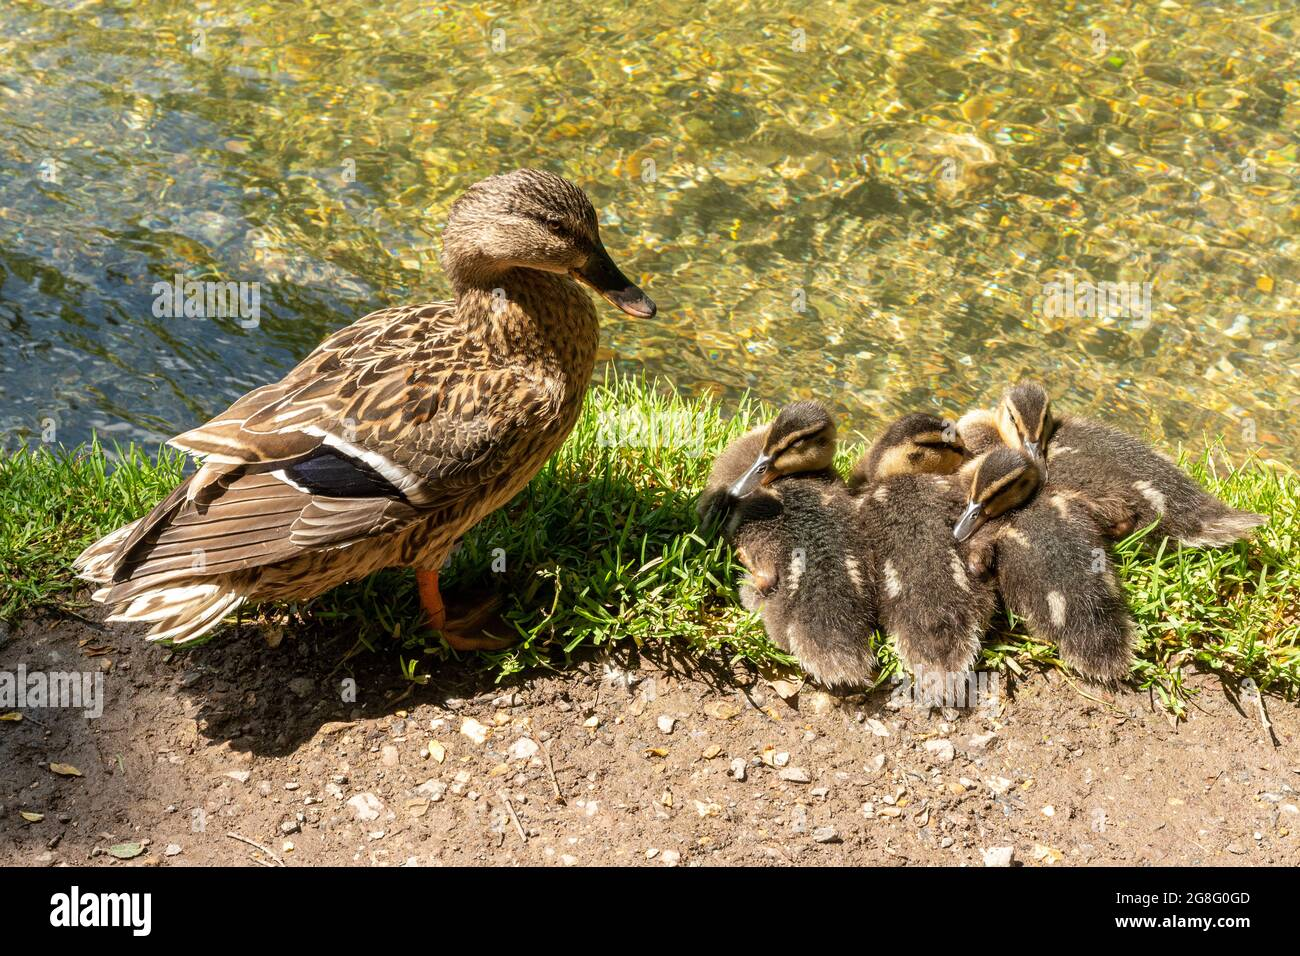 mallard-duck-family-anas-platyrhynchos-female-with-four-young-ducklings-beside-a-river-uk-2G8G0GD.jpg